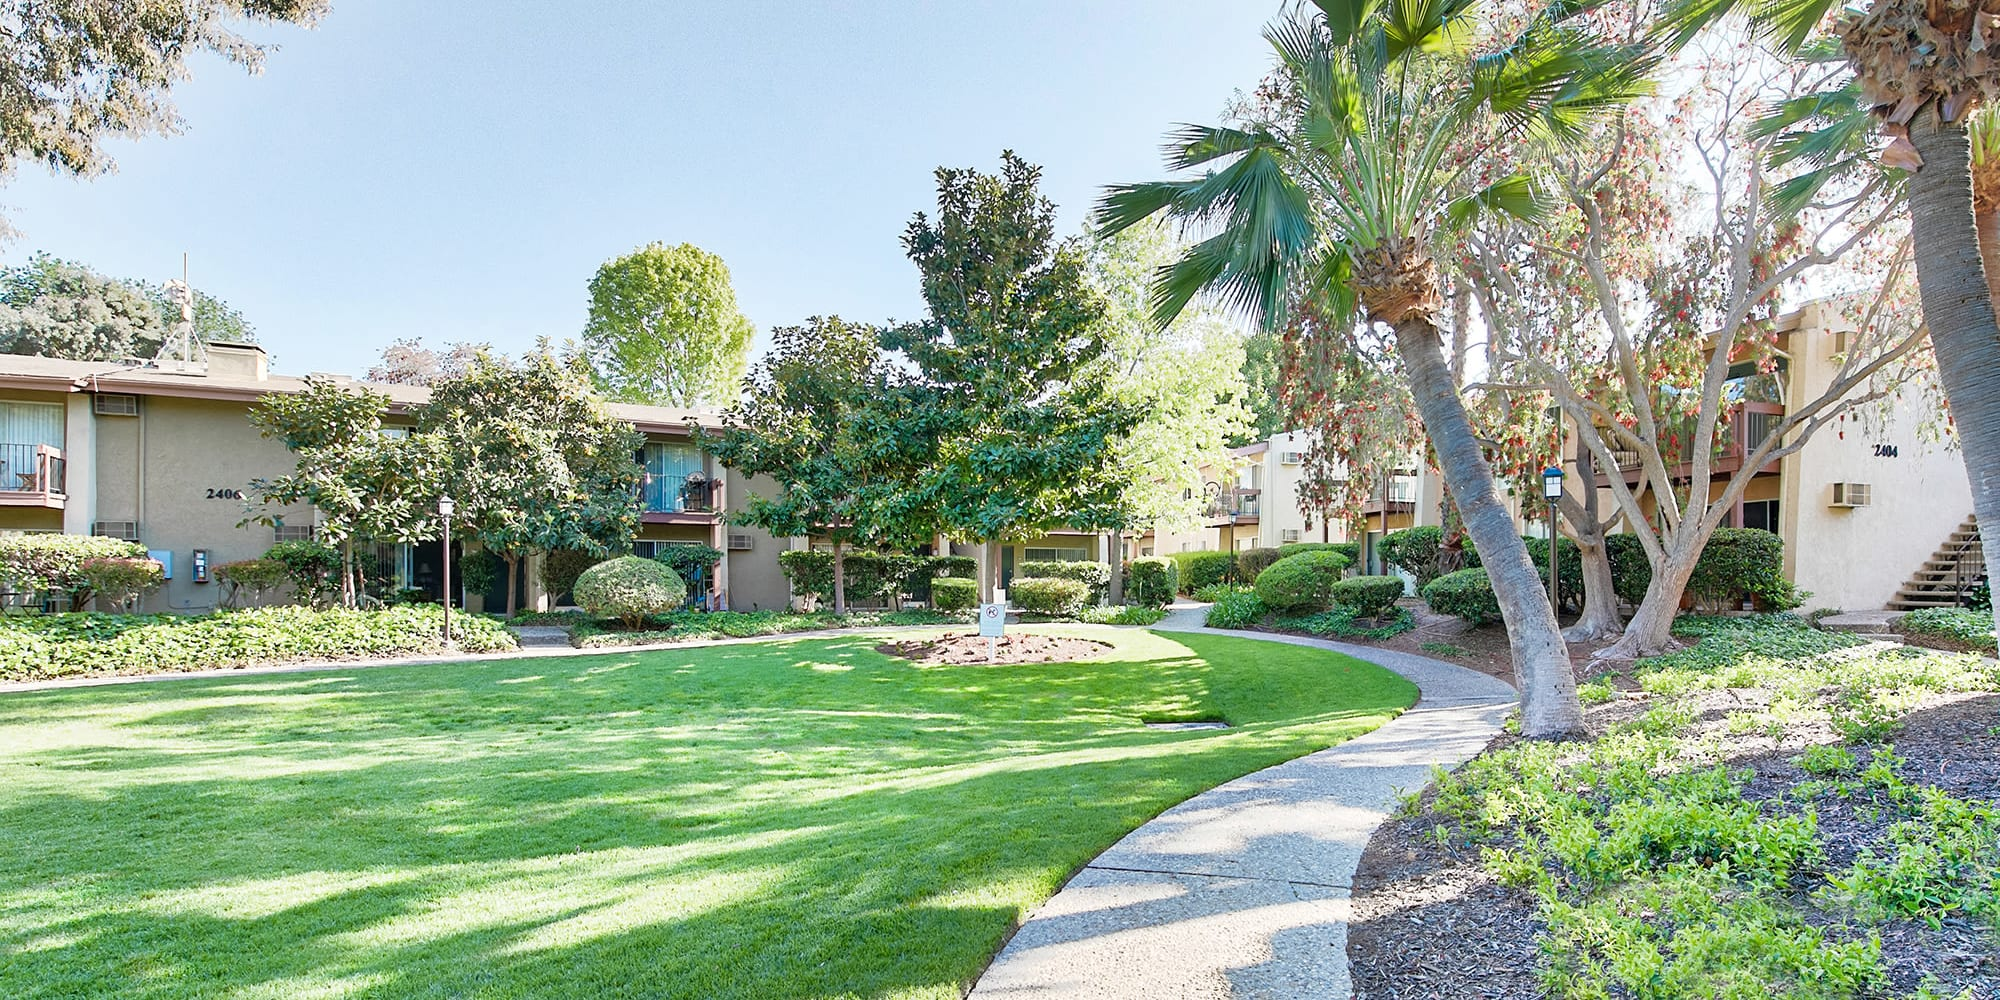 Well-maintained landscaping throughout the community at Mediterranean Village Apartments in Costa Mesa, California